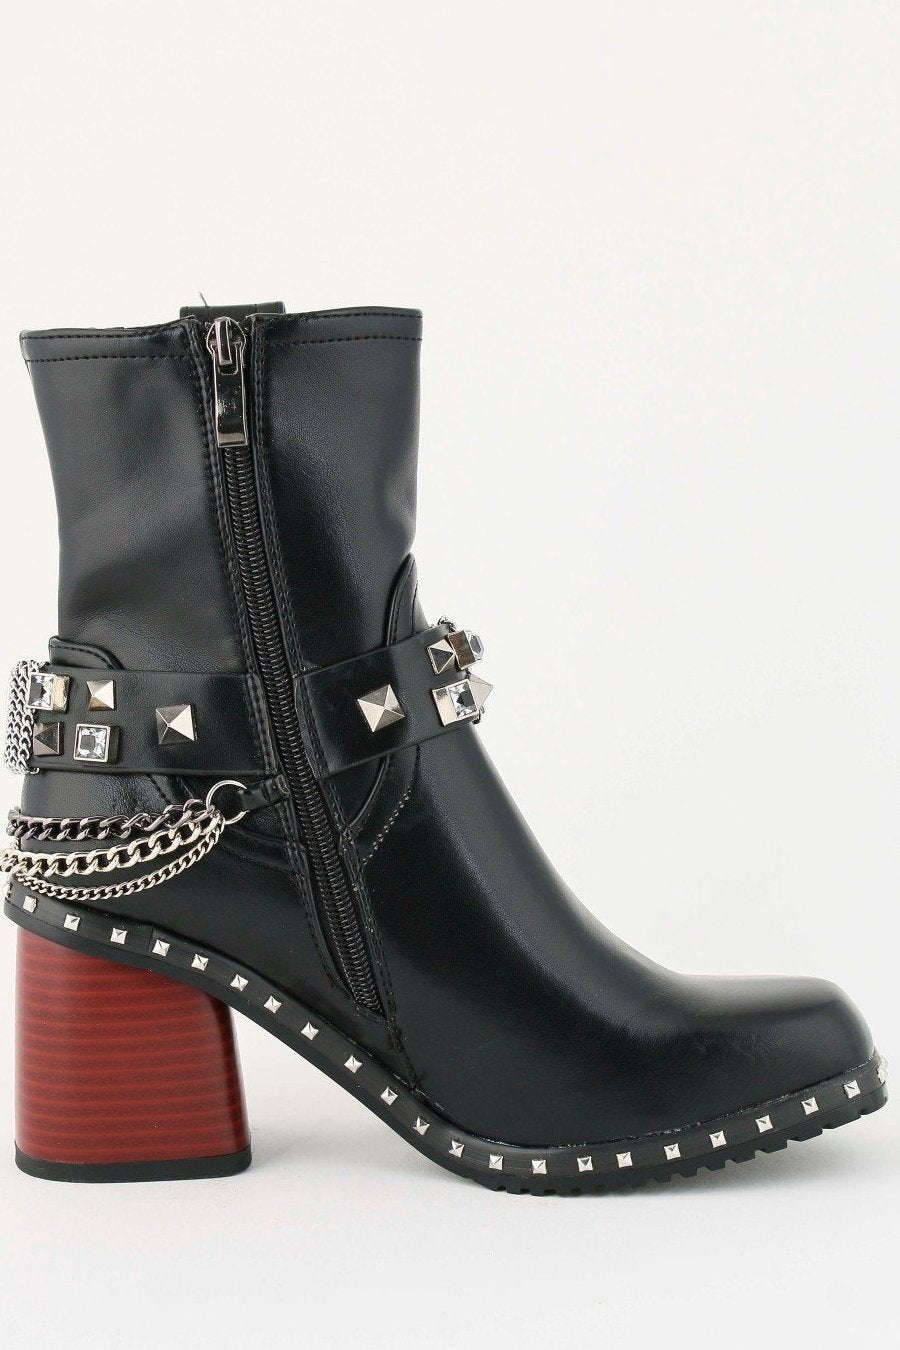 Rock with Me Ankle Boots, shoes, BELLO CLOCK, LittleCuteCorner. - Belgian Woman Online Clothing Store